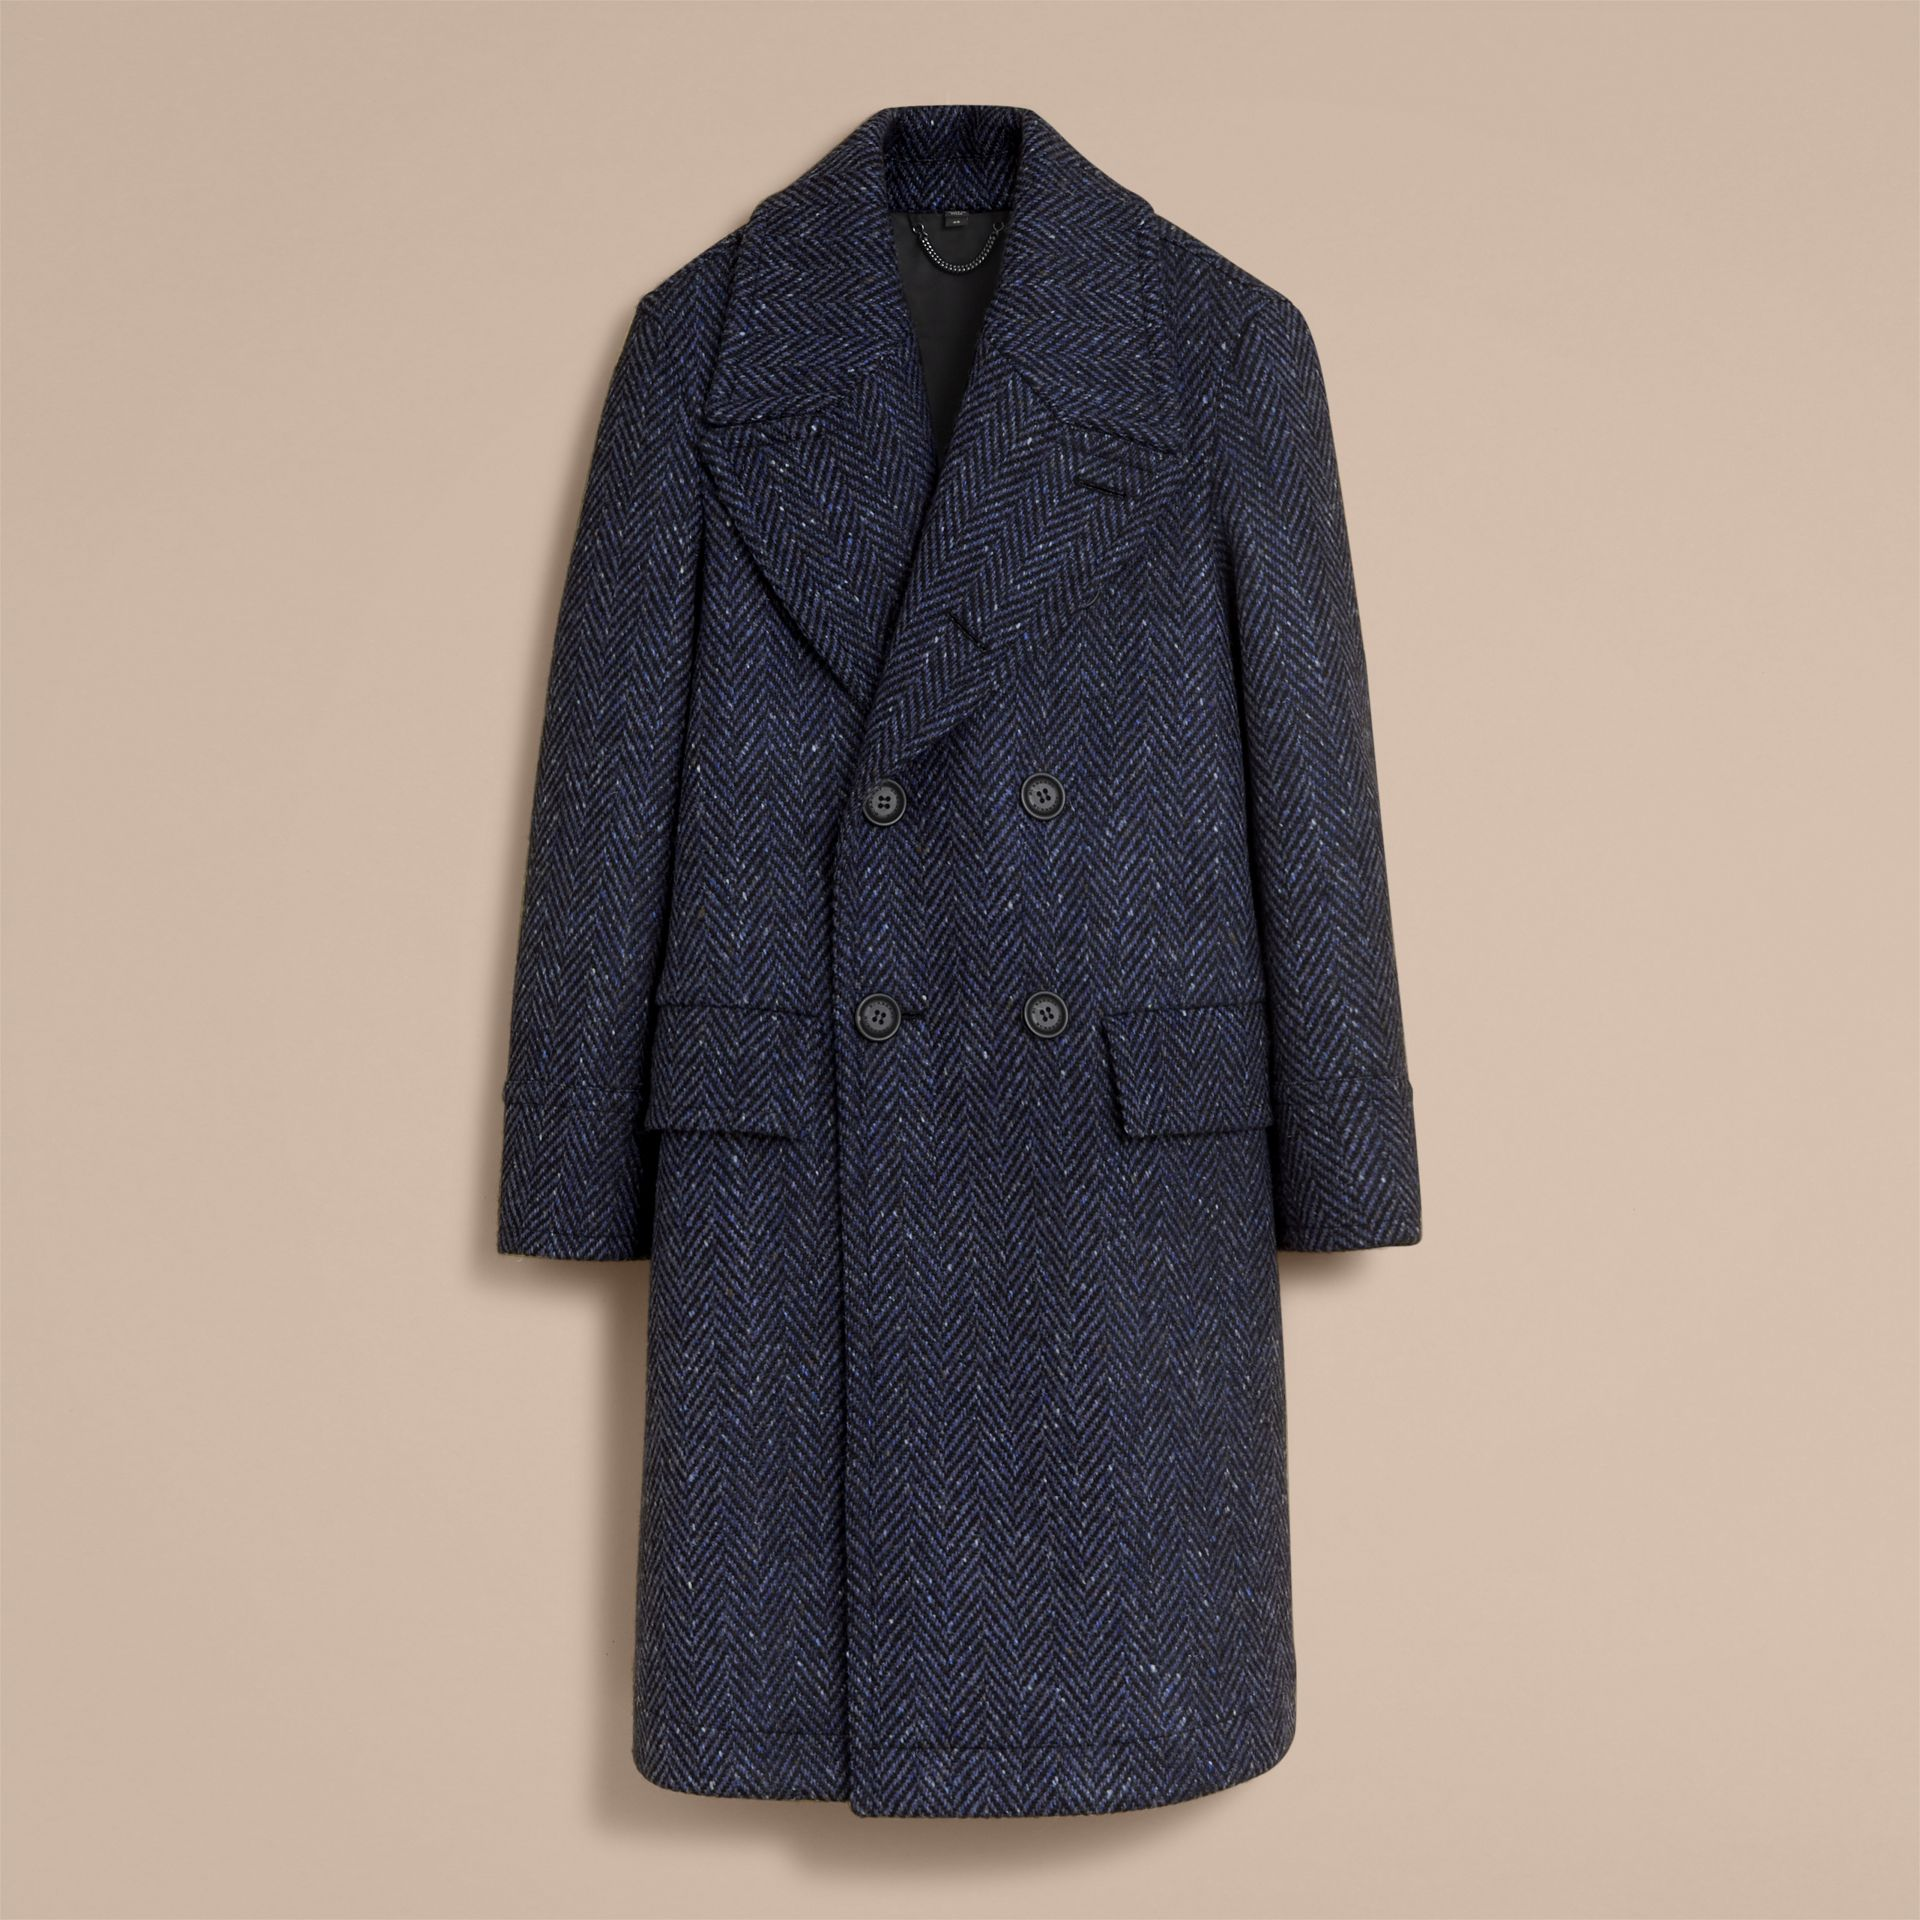 Donegal Herringbone Wool Tweed Topcoat - gallery image 4